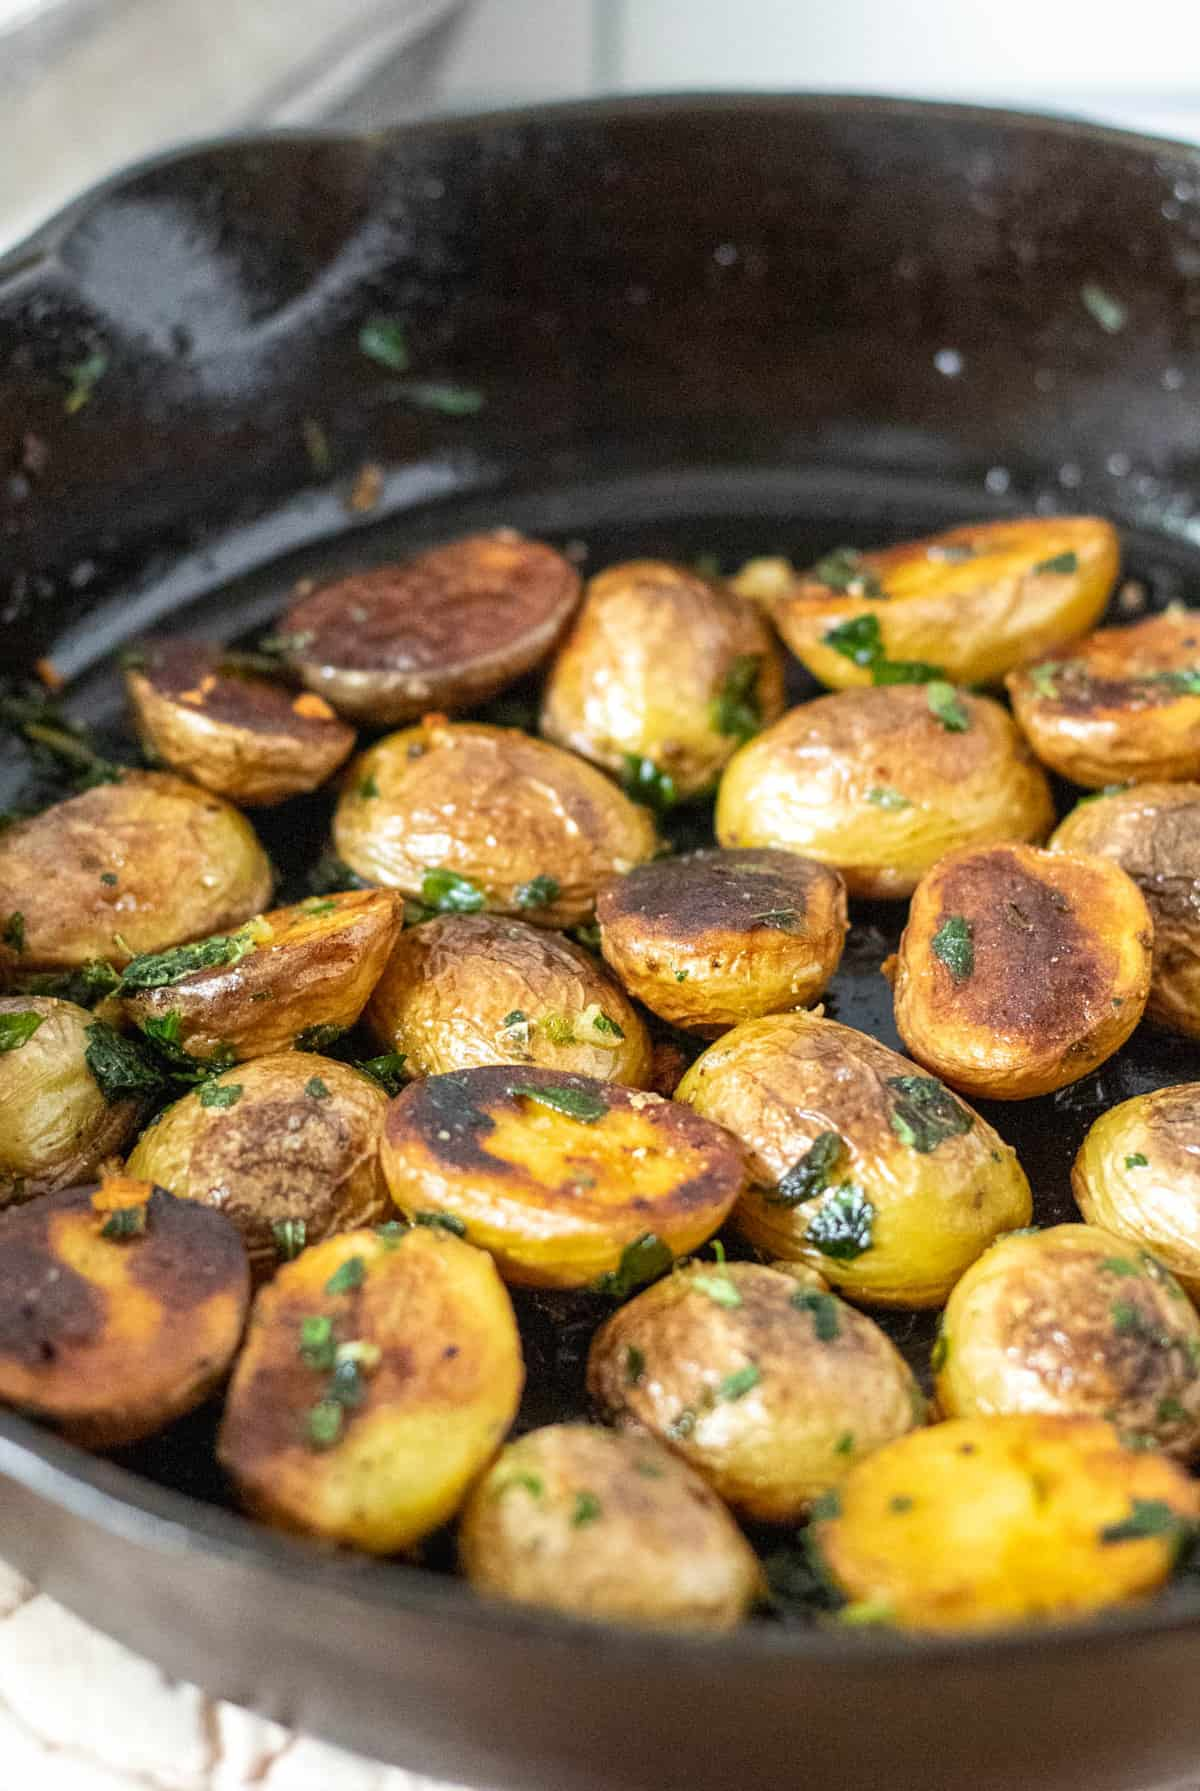 Potatoes cooked until brown and crispy in cast iron skillet.